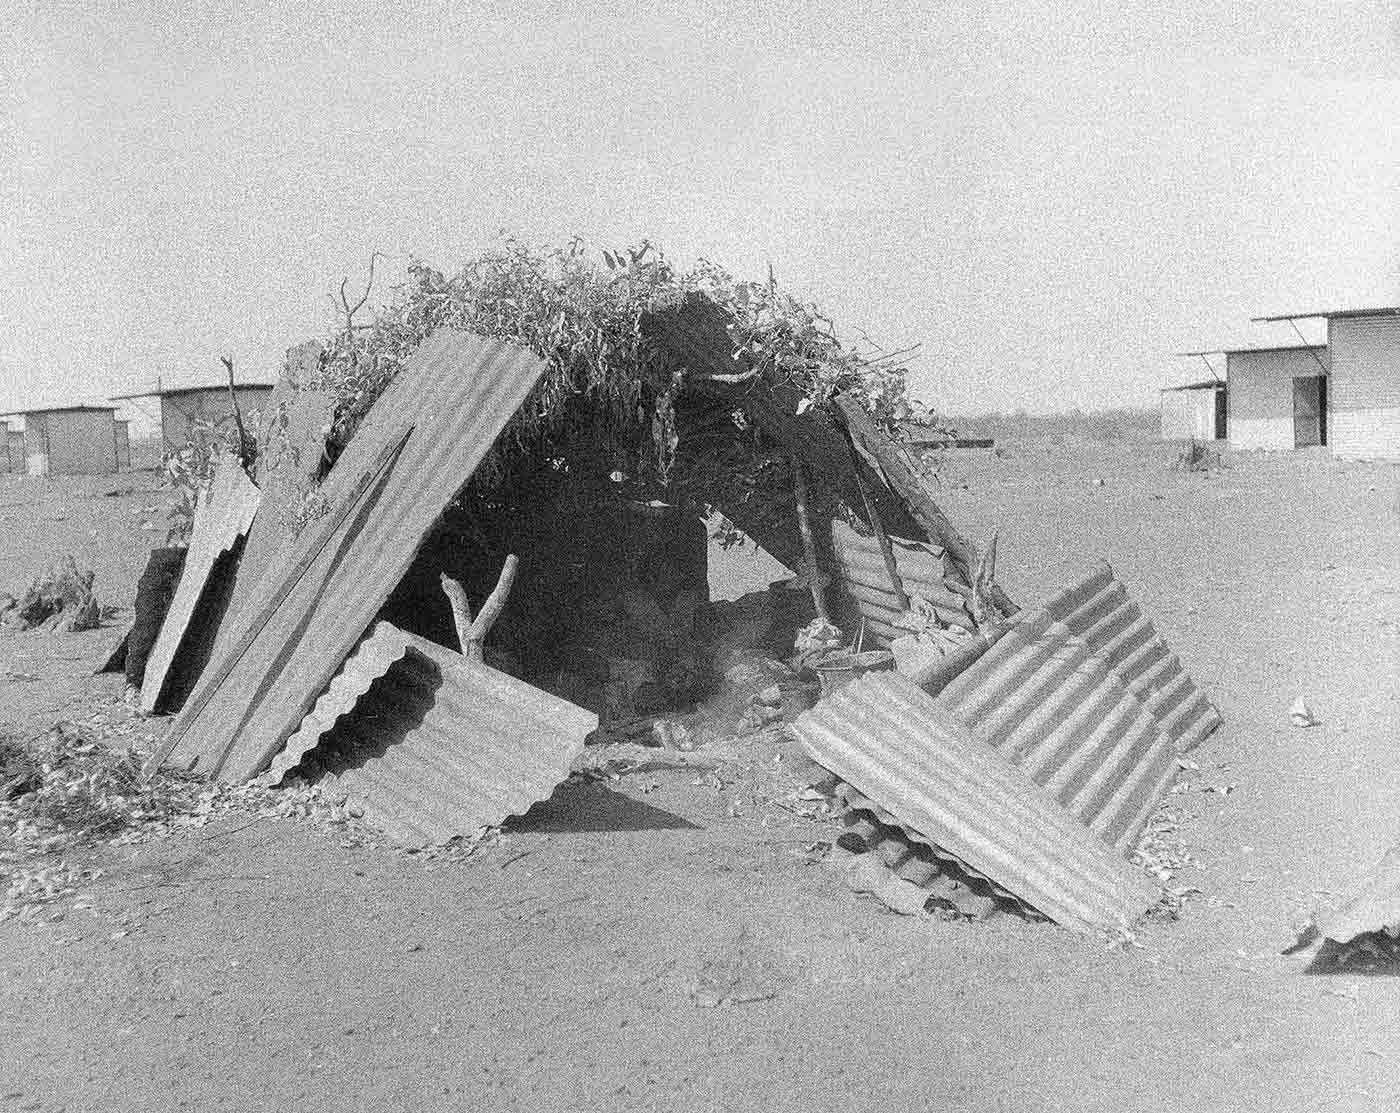 A black and white photo of a Warlpiri shelter with huts in the background.